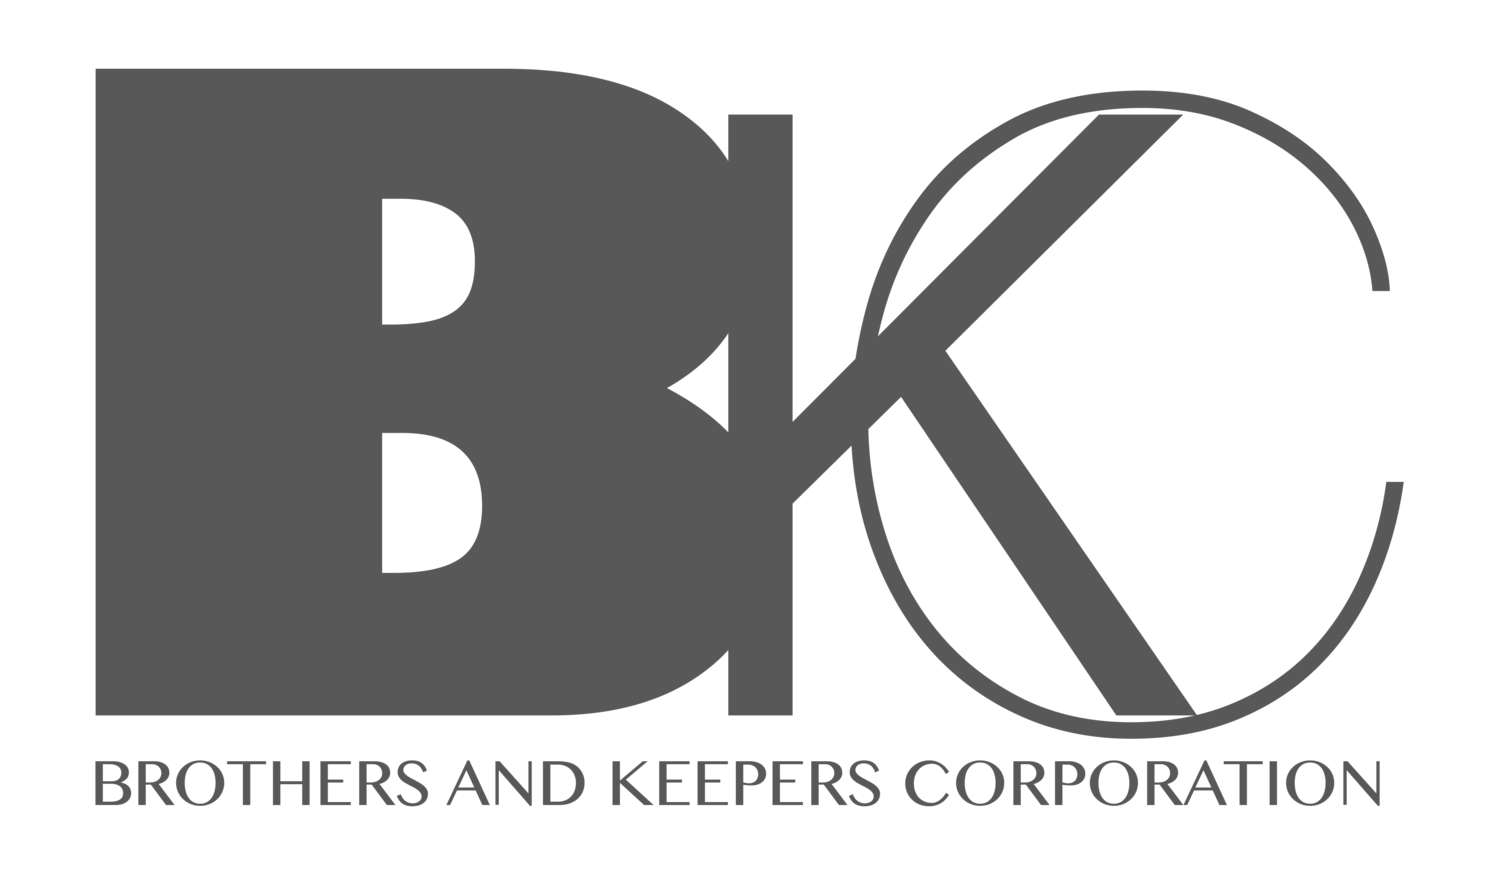 BROTHERS & KEEPERS CORPORATION